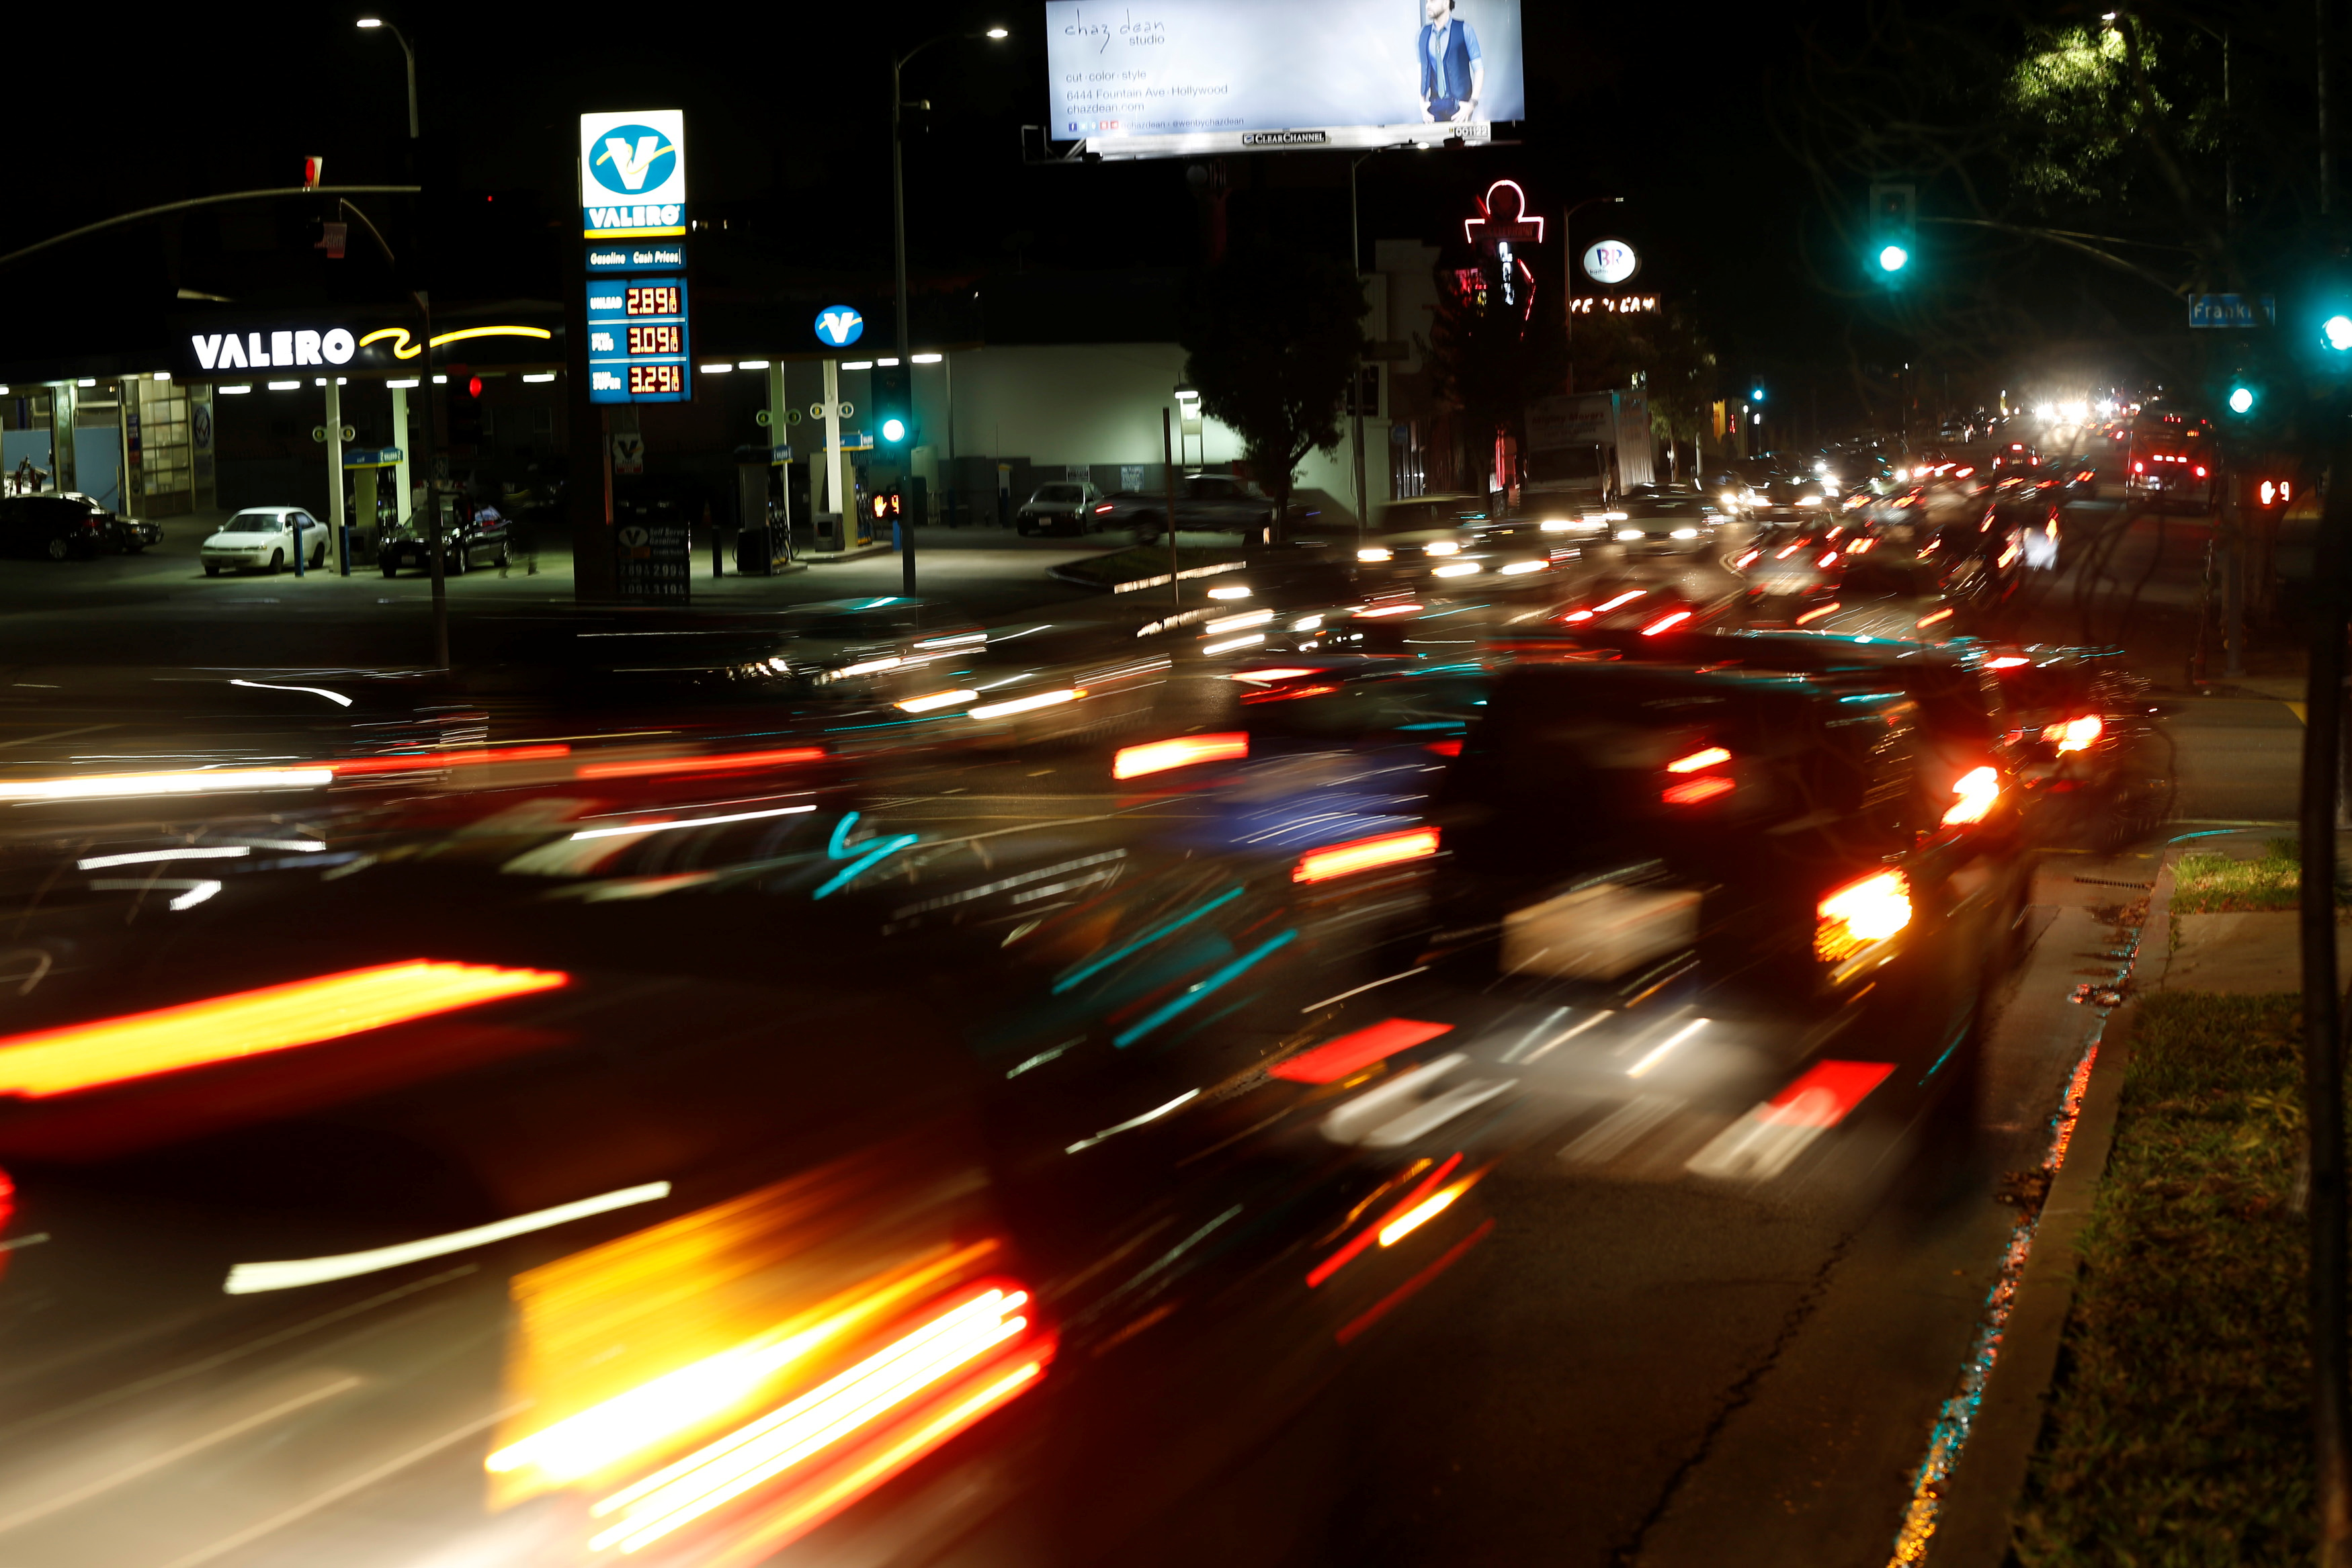 Gas prices at a Valero gas station are pictured, as vehicles drive by, in Los Angeles, California January 22, 2016.  REUTERS/Mario Anzuoni